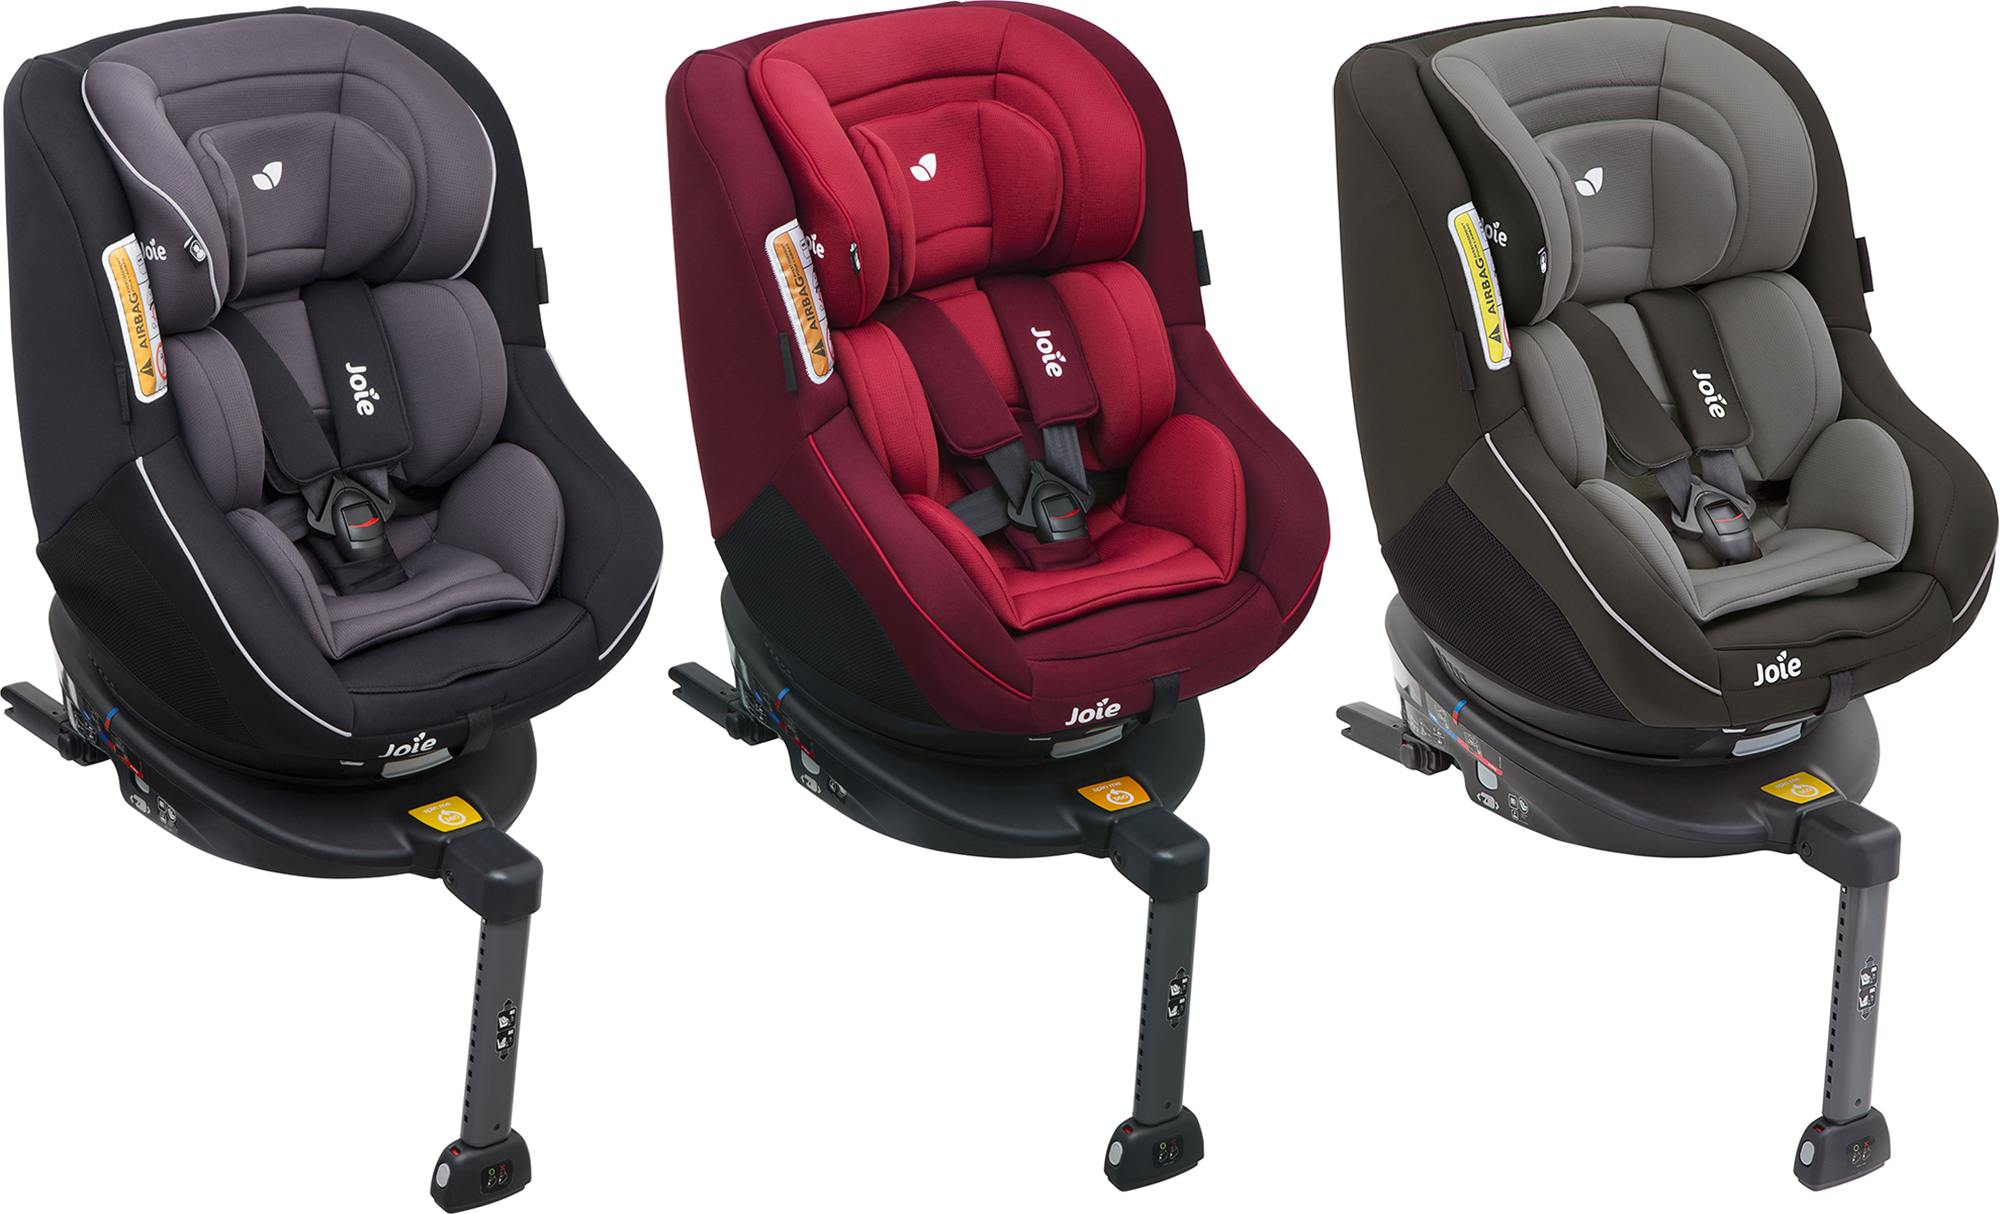 joie spin 360 group 0 1 car seat rotating baby safety. Black Bedroom Furniture Sets. Home Design Ideas